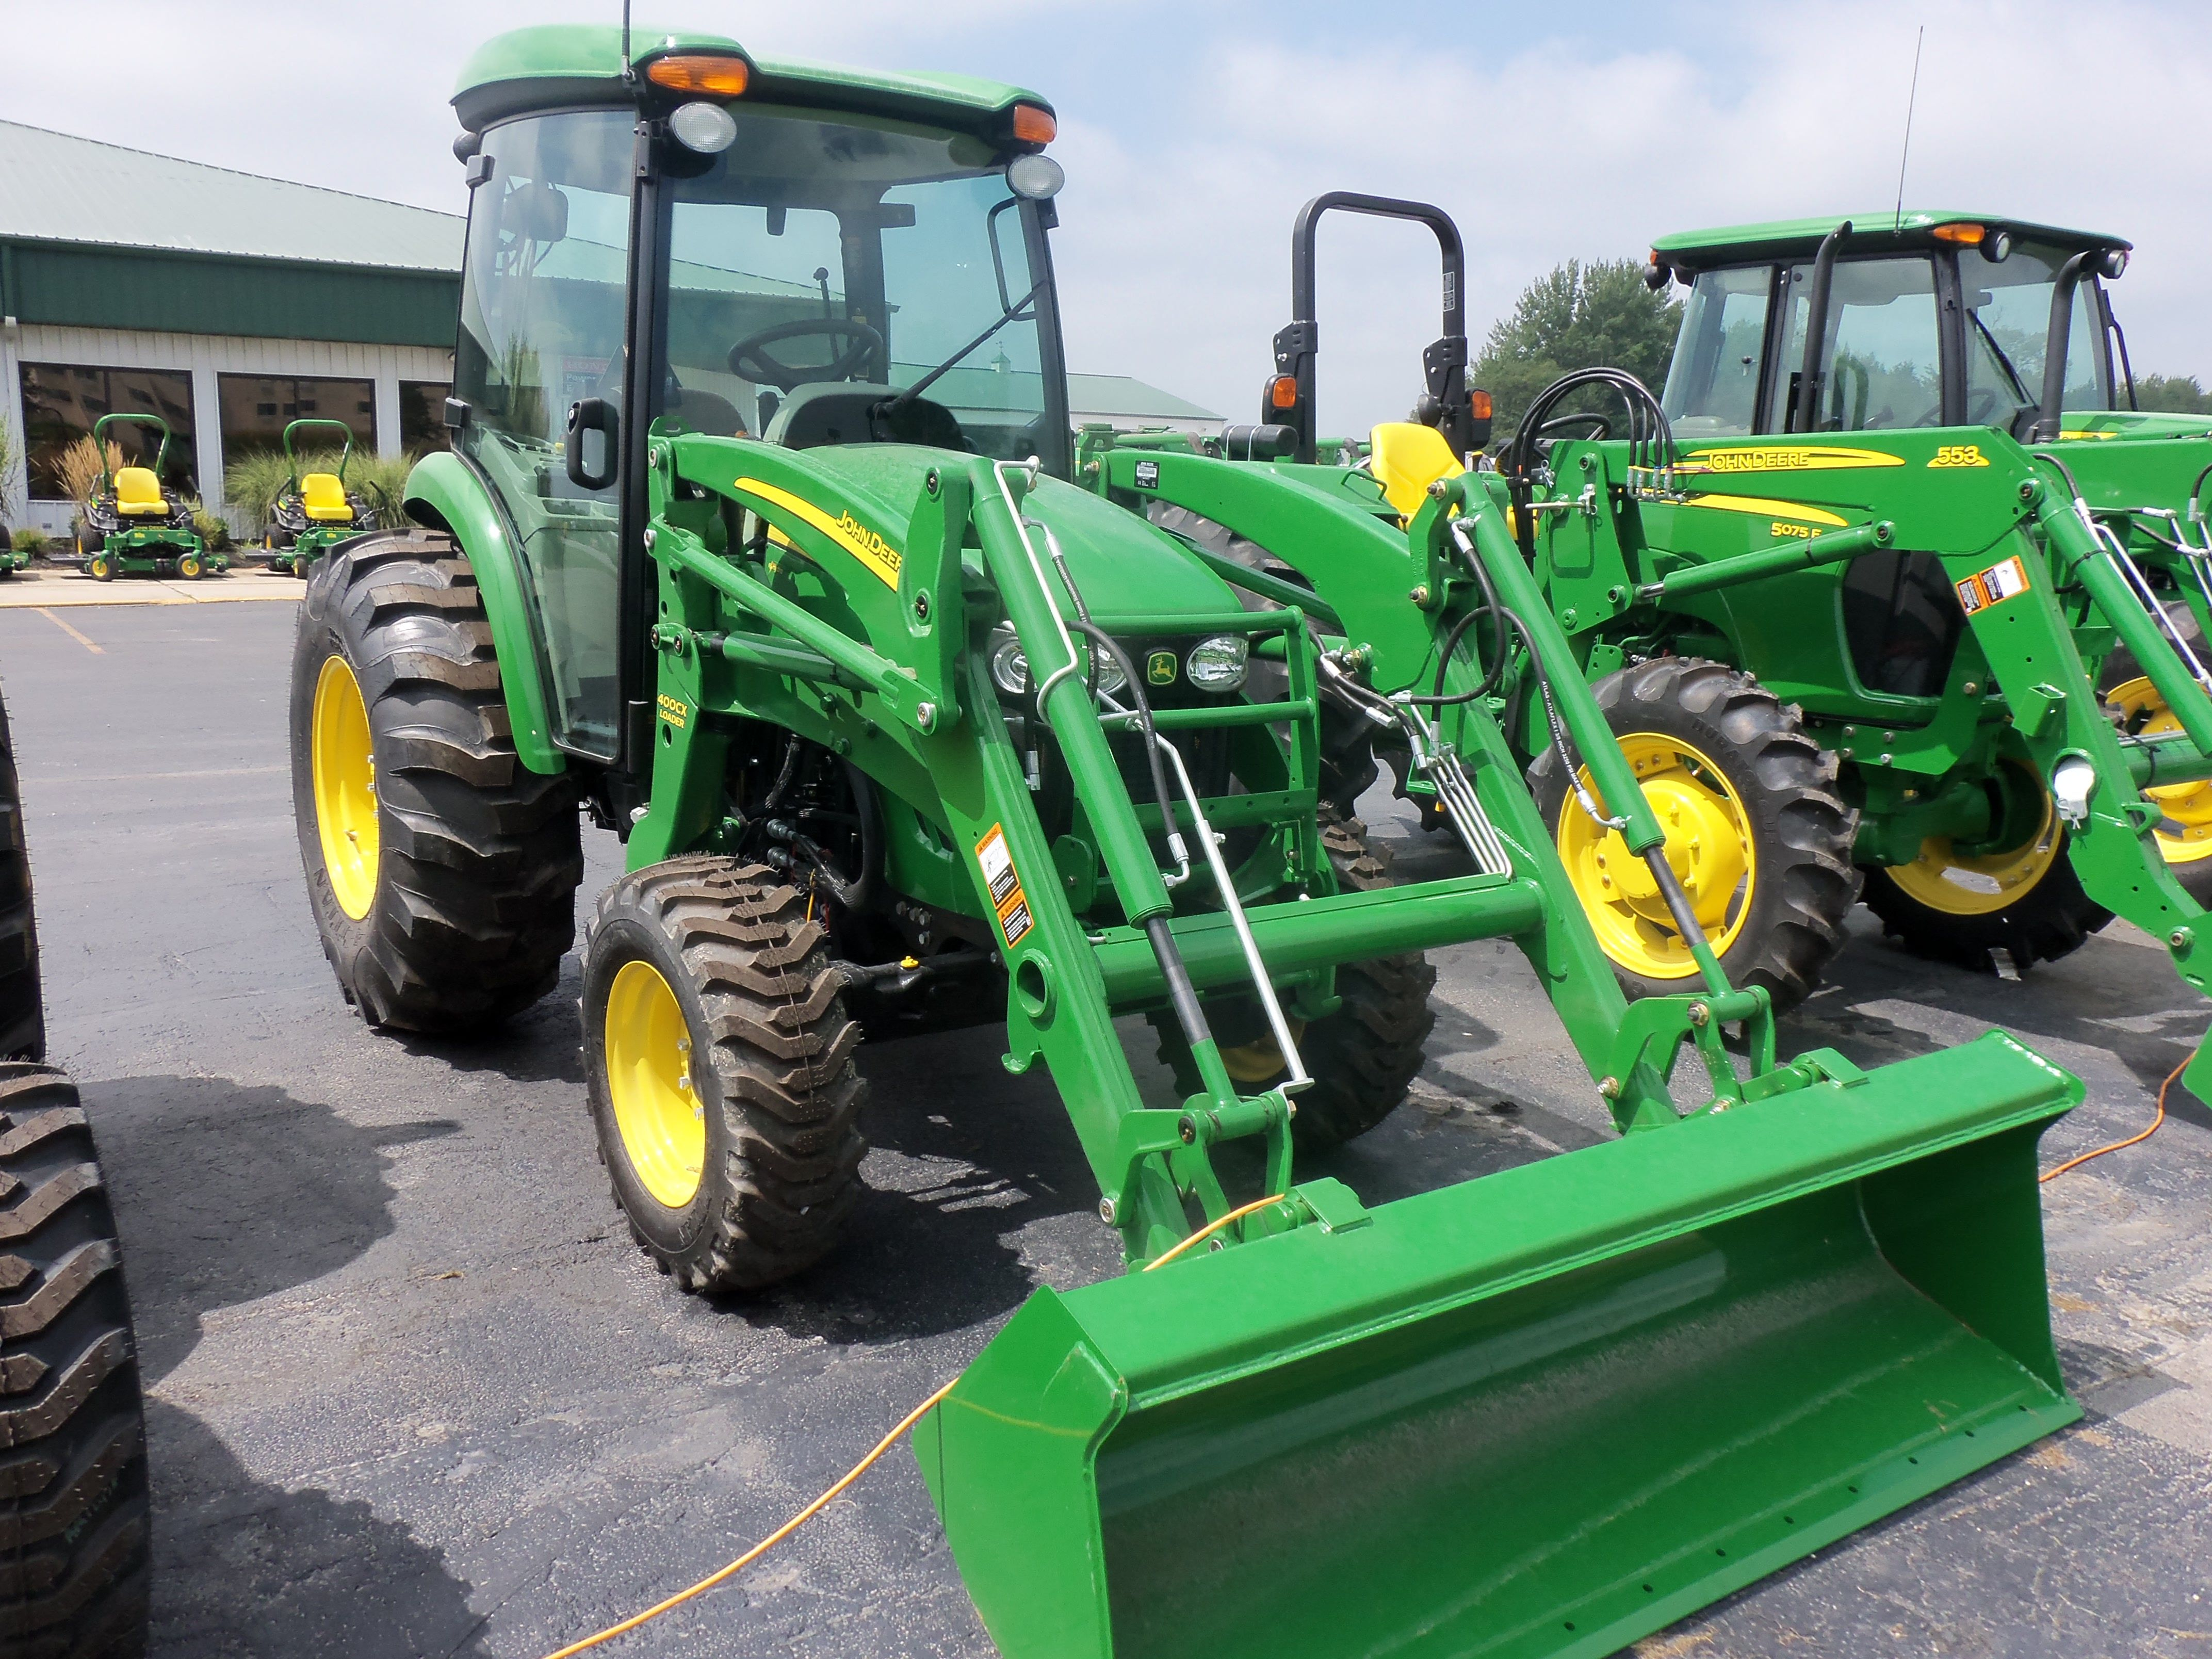 hight resolution of 66 engine 56 pto hp john deere 4720 cab tractor with 400cx loader turbocharged 149 cid diesel 3 700 lbs 15 gallon fuel tank 72 inch wheelbase